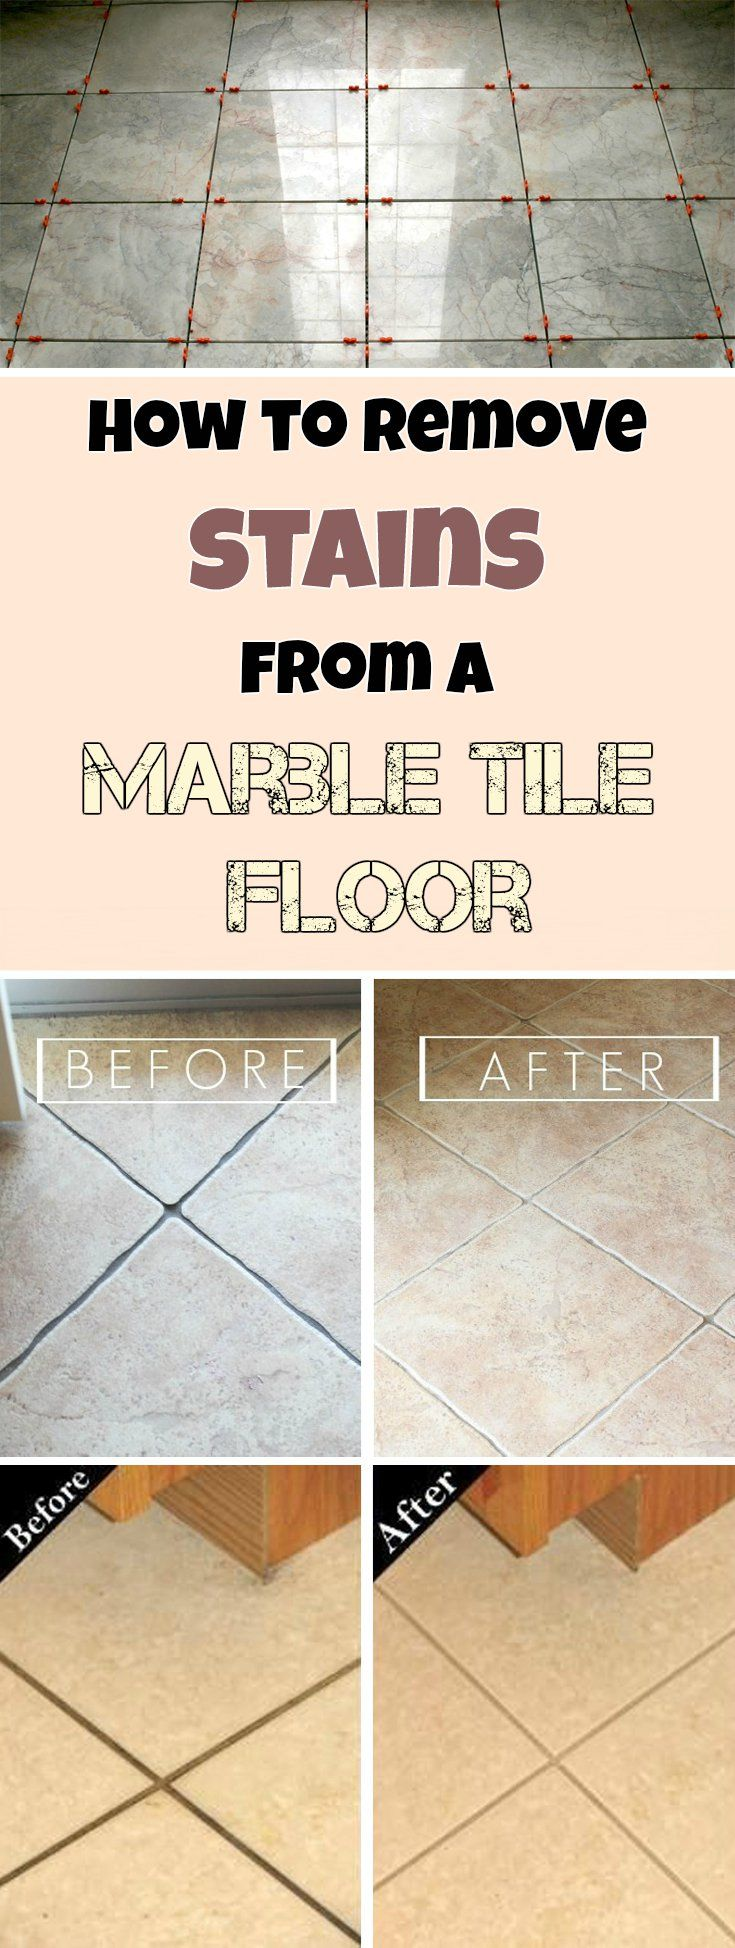 Best 25 marble floor cleaner ideas on pinterest carrera glacier how to remove stains from marble tile floor dailygadgetfo Gallery